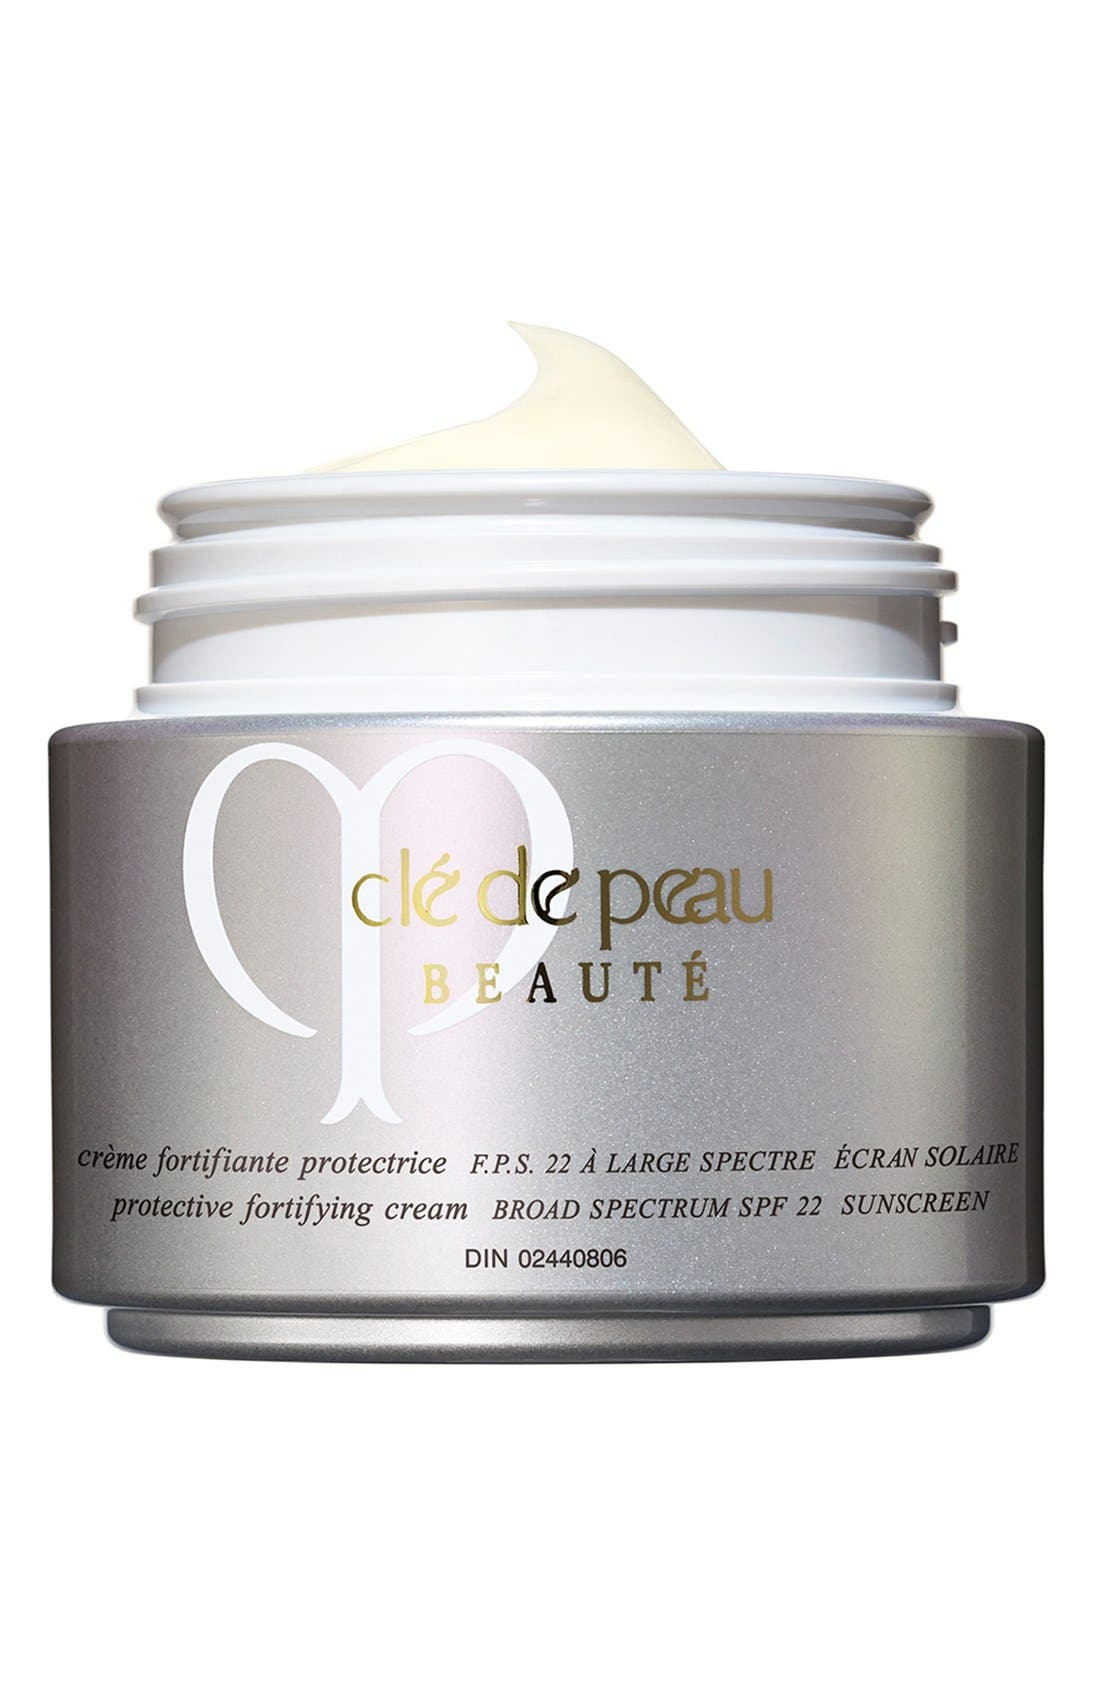 Cle De Peau Beaute Protective Fortifying Cream Broad Spectrum Spf 22 Sunscreen